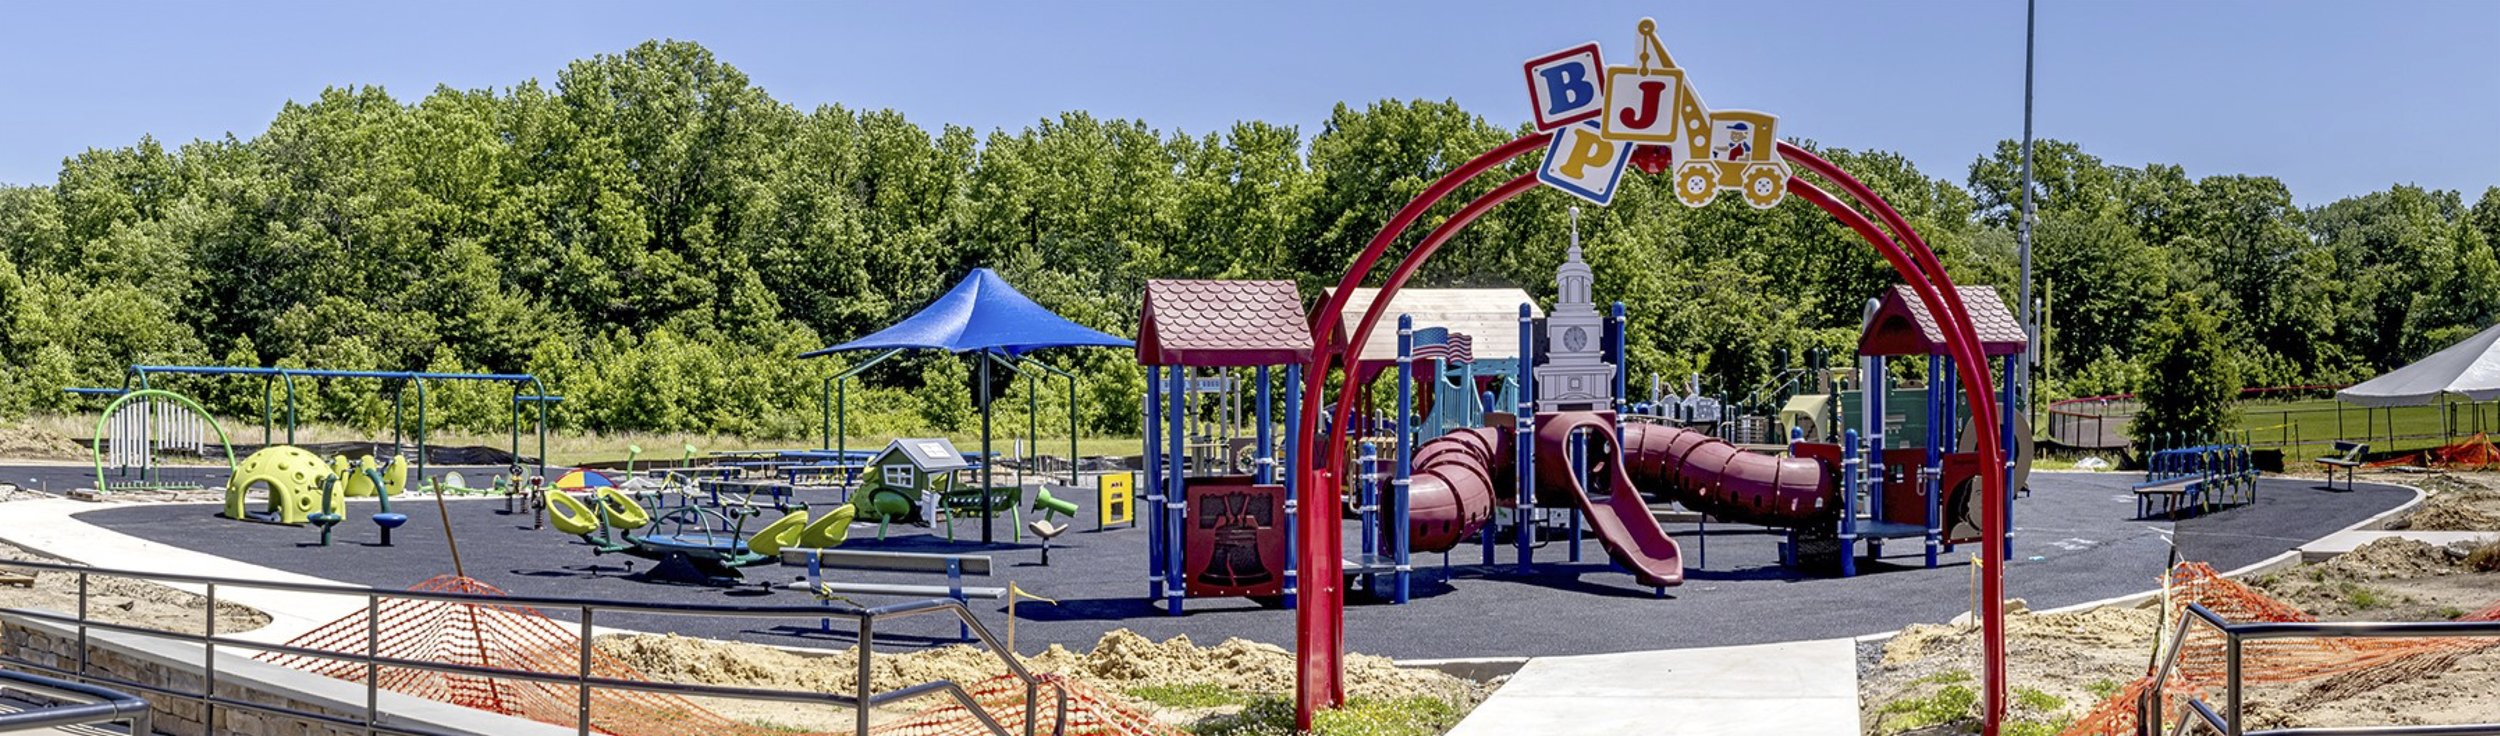 This is not the finished look of the playground at Delran. The rubberized surfacing is still being installed.